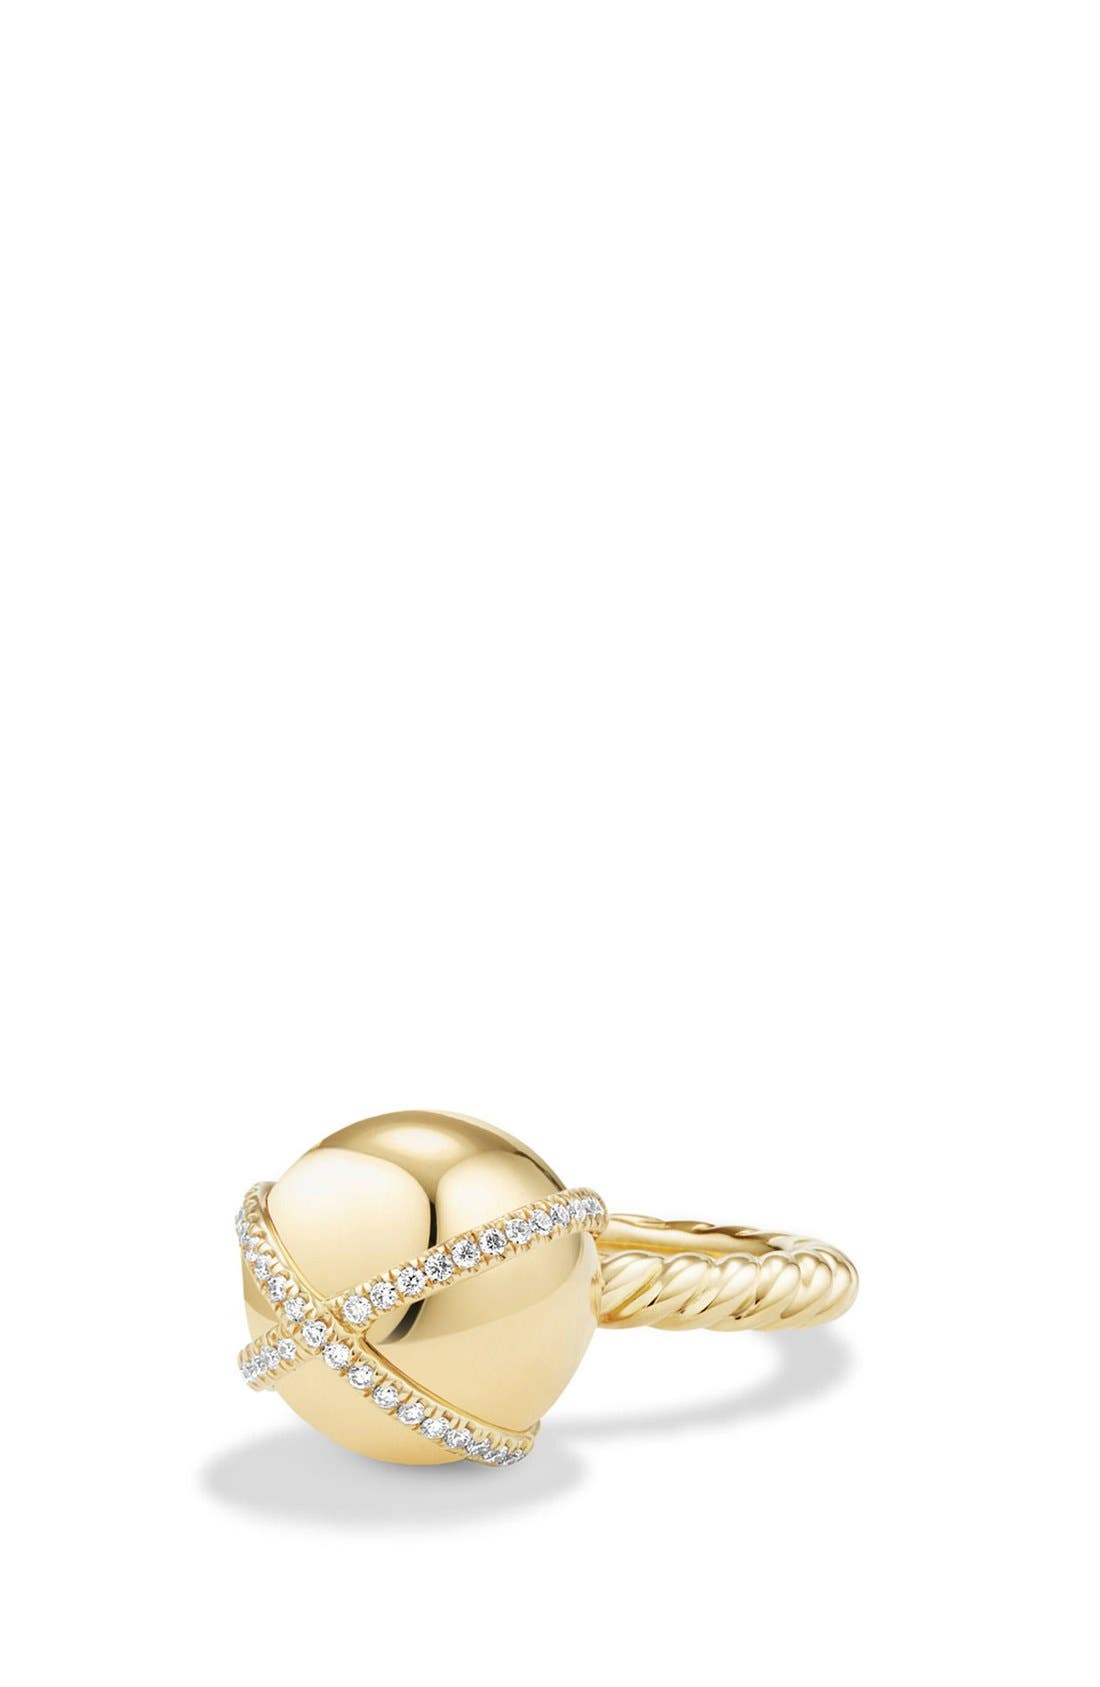 David Yurman 'Solari' Wrap Ring with Pavé Diamonds in 18k Gold